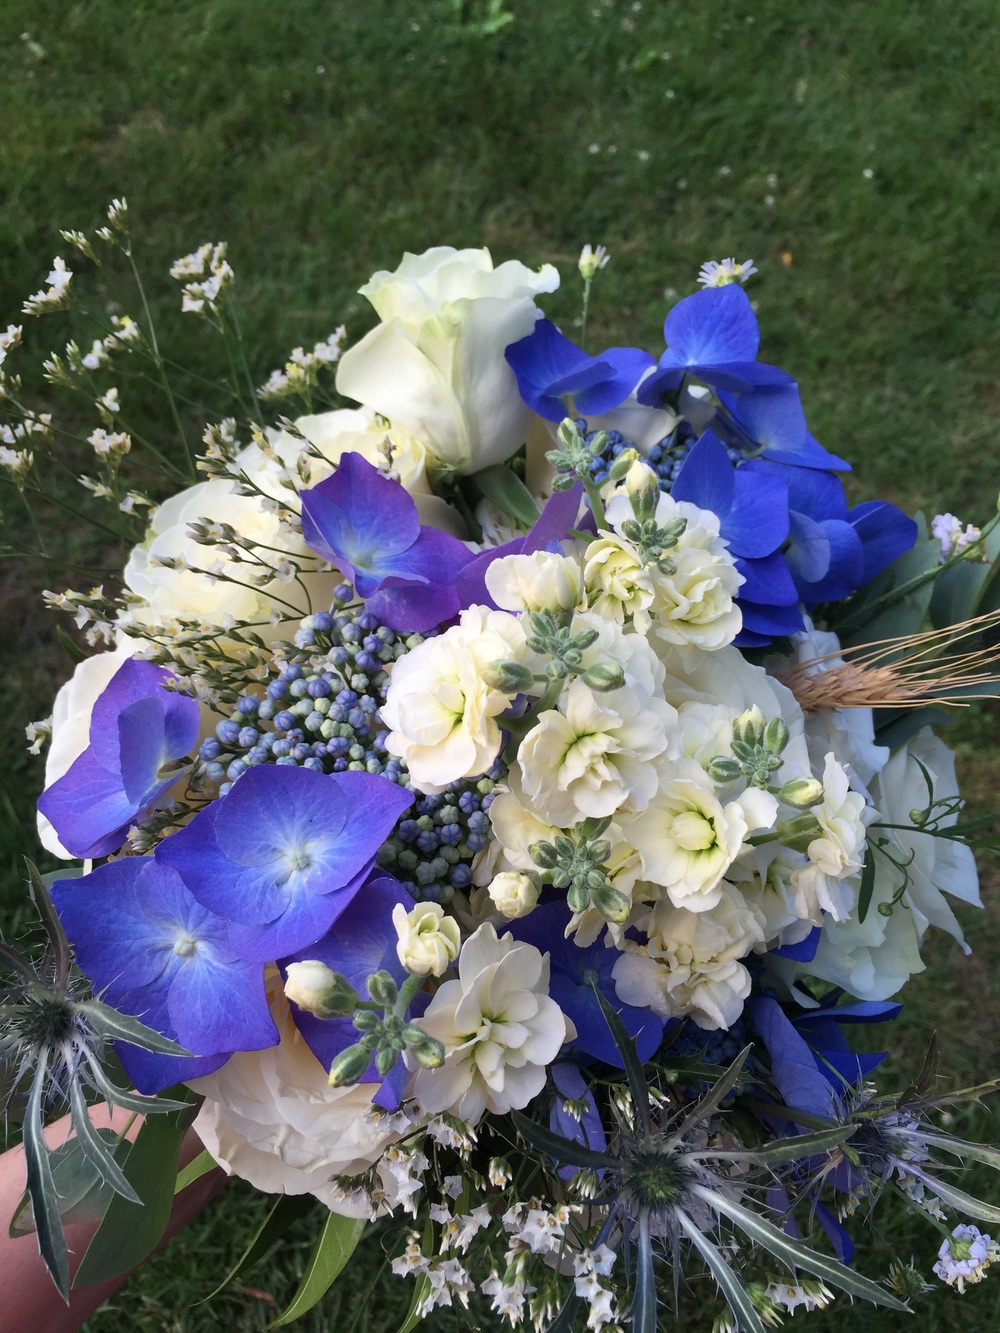 Kim's mom, Barb, loves flowers. She has a massive flower garden in her back yard. Between her collection, some she purchased, and cuttings from her friends' yards, she made some killer floral arrangements. I'm a sucker for hydrangeas, especially this deep blue.